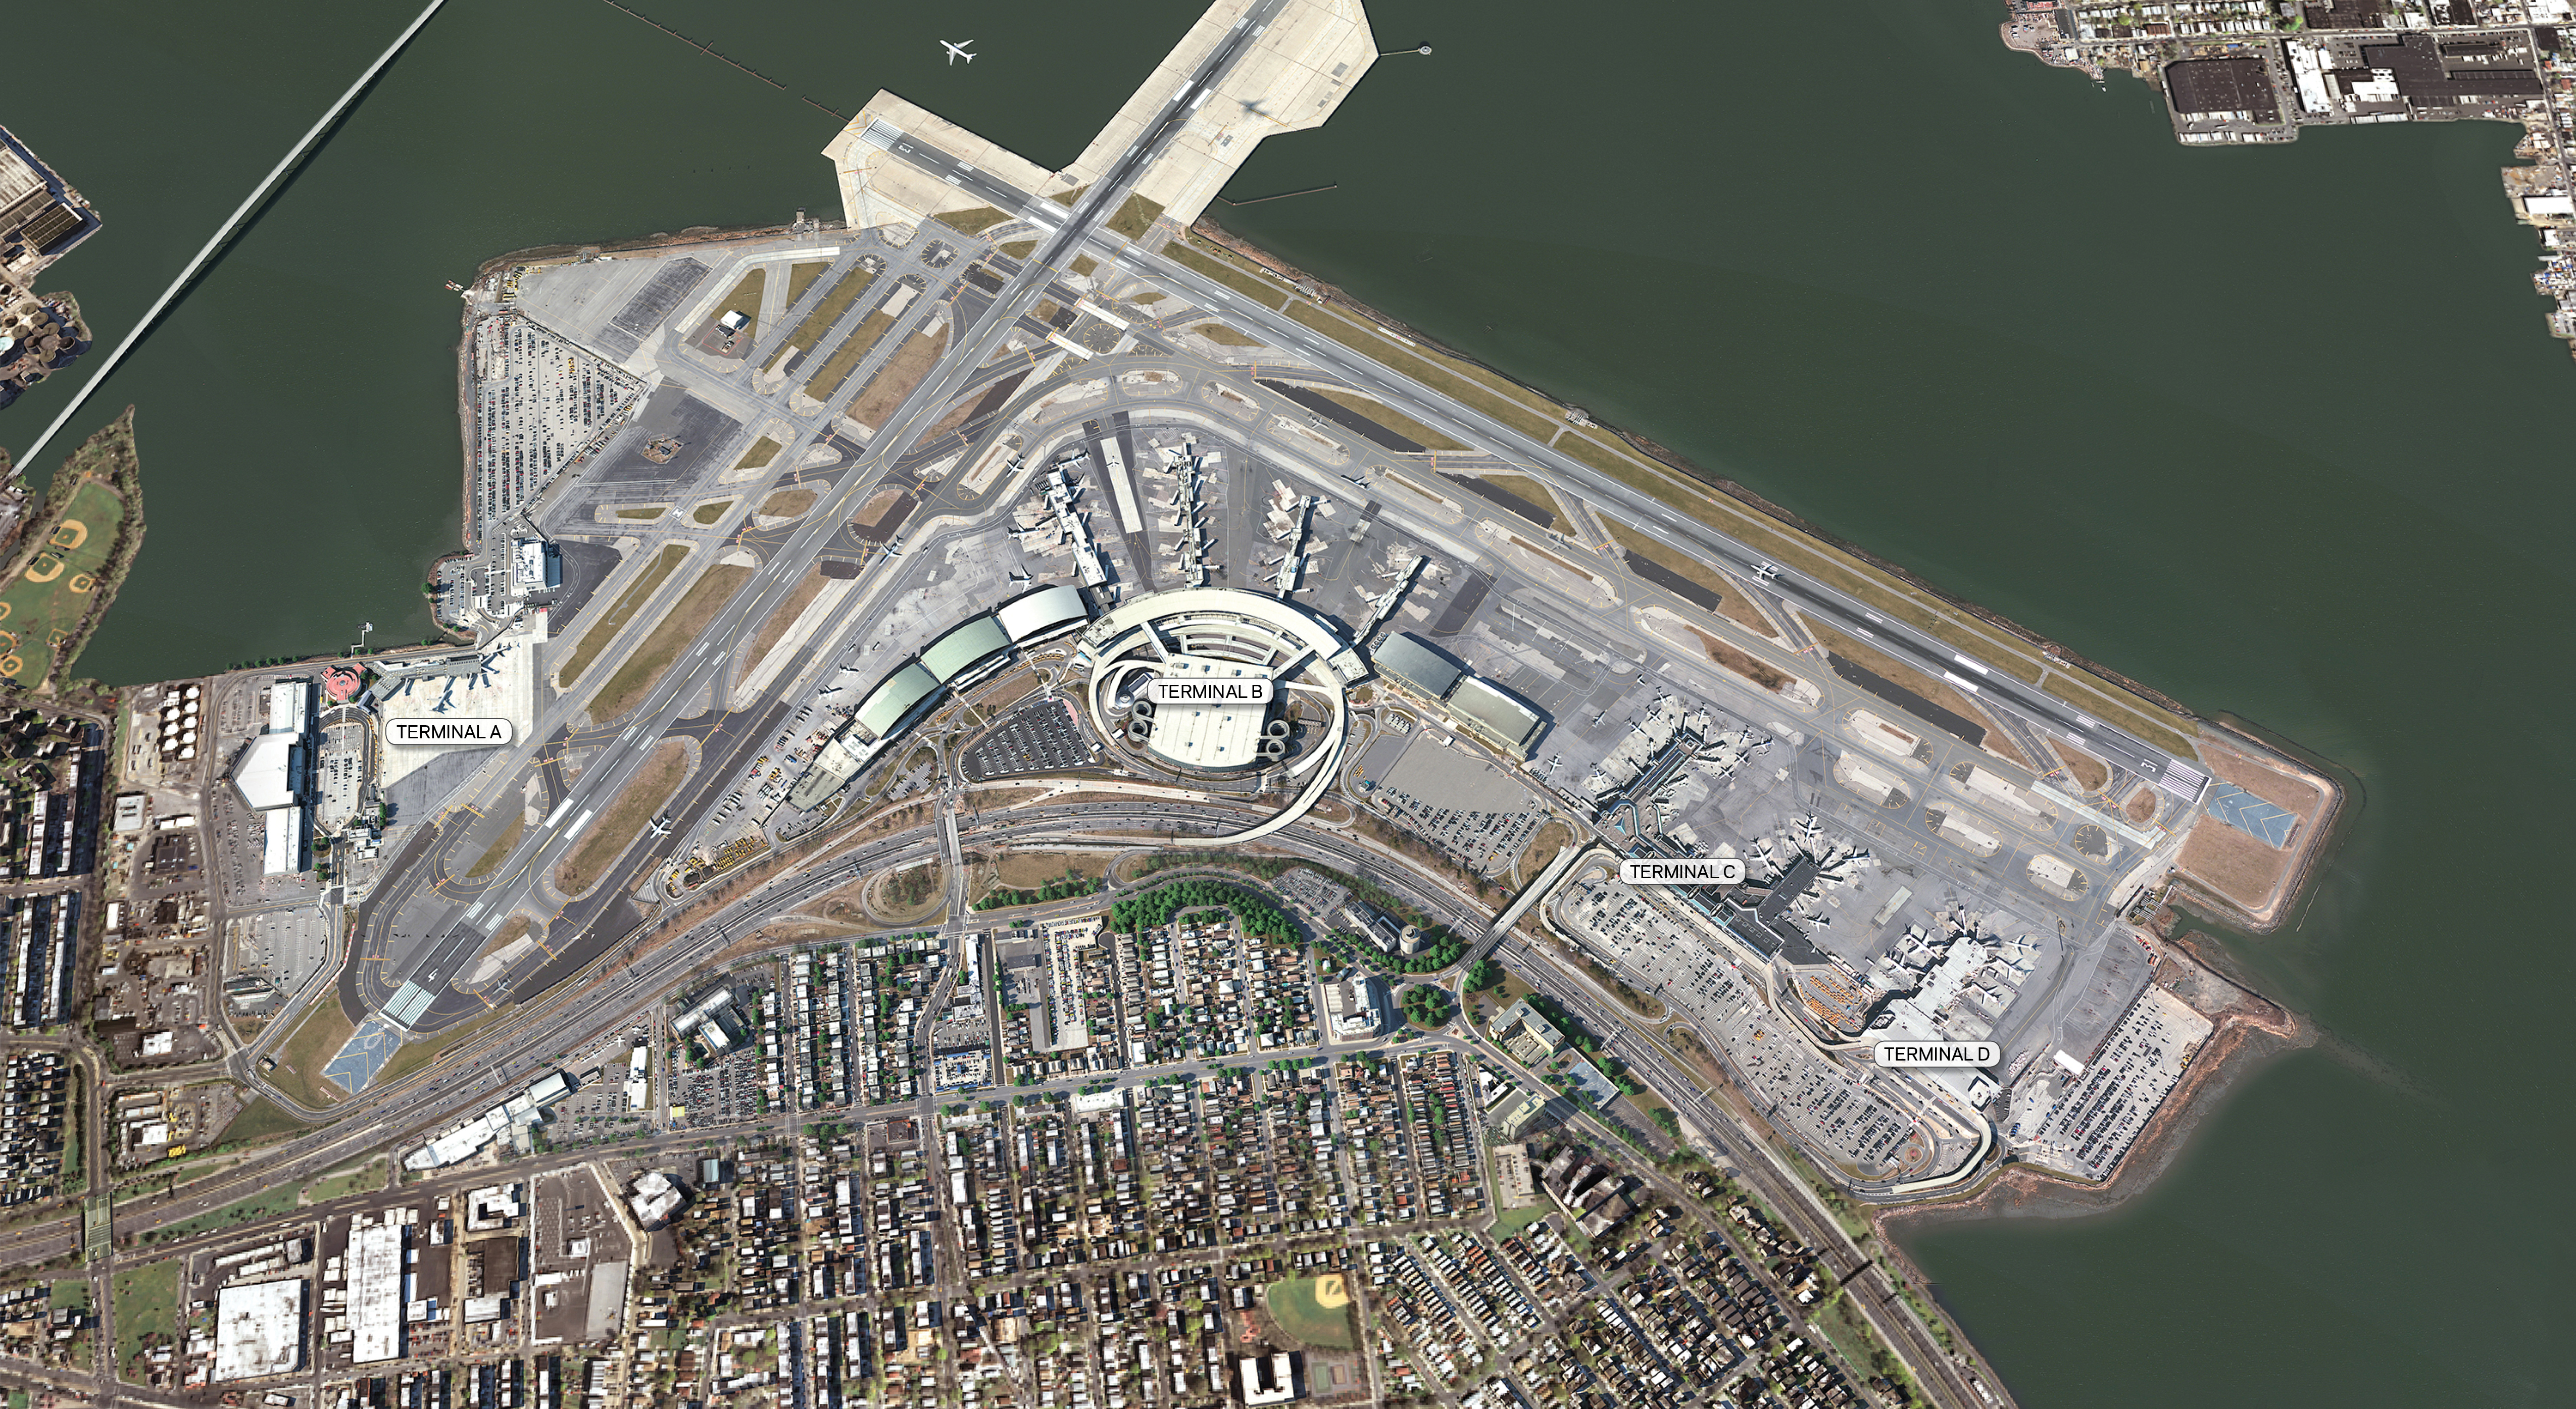 Single Unified Terminal Laguardia S Current Terminal Layout Comprised Of Multiple Fragmented Terminals Po